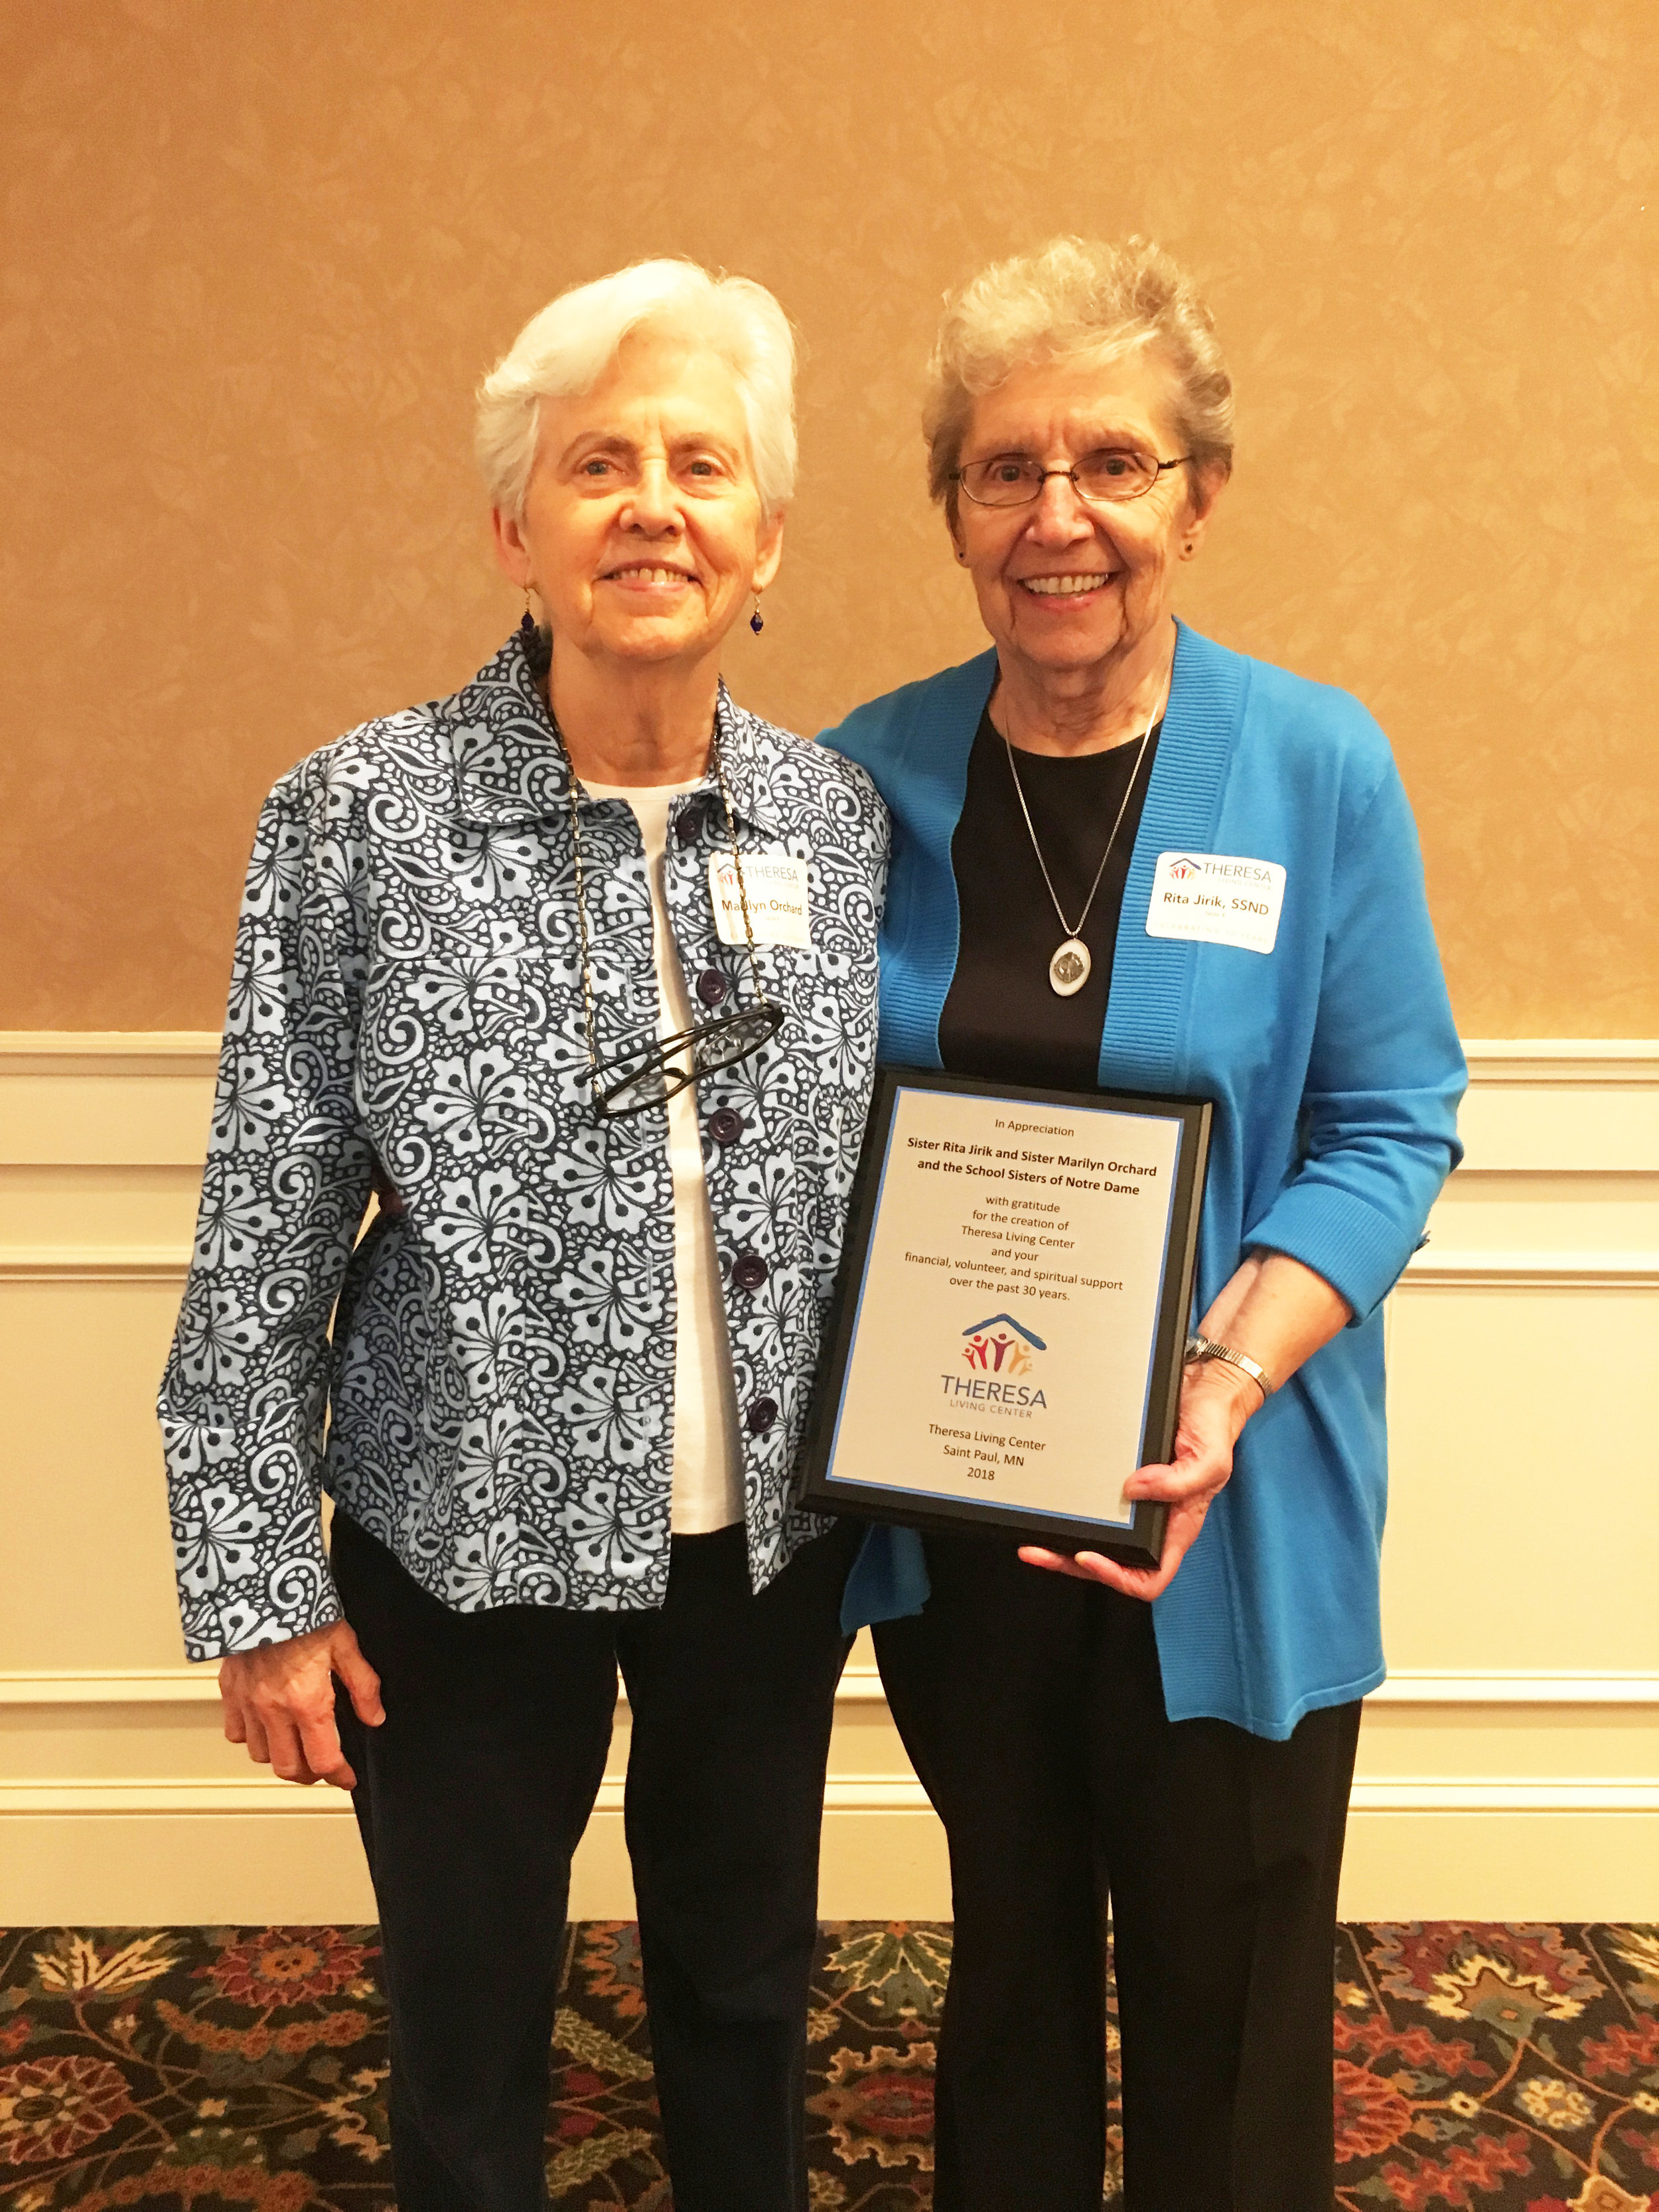 Sisters Marilyn Orchard and Rita Jirk, SSND, our two founders. They were presented with a plaque acknowledging the SSND's role in the creation of Theresa Living Center in 1988 and their generous ongoing support in time, financial assistance, and talents.